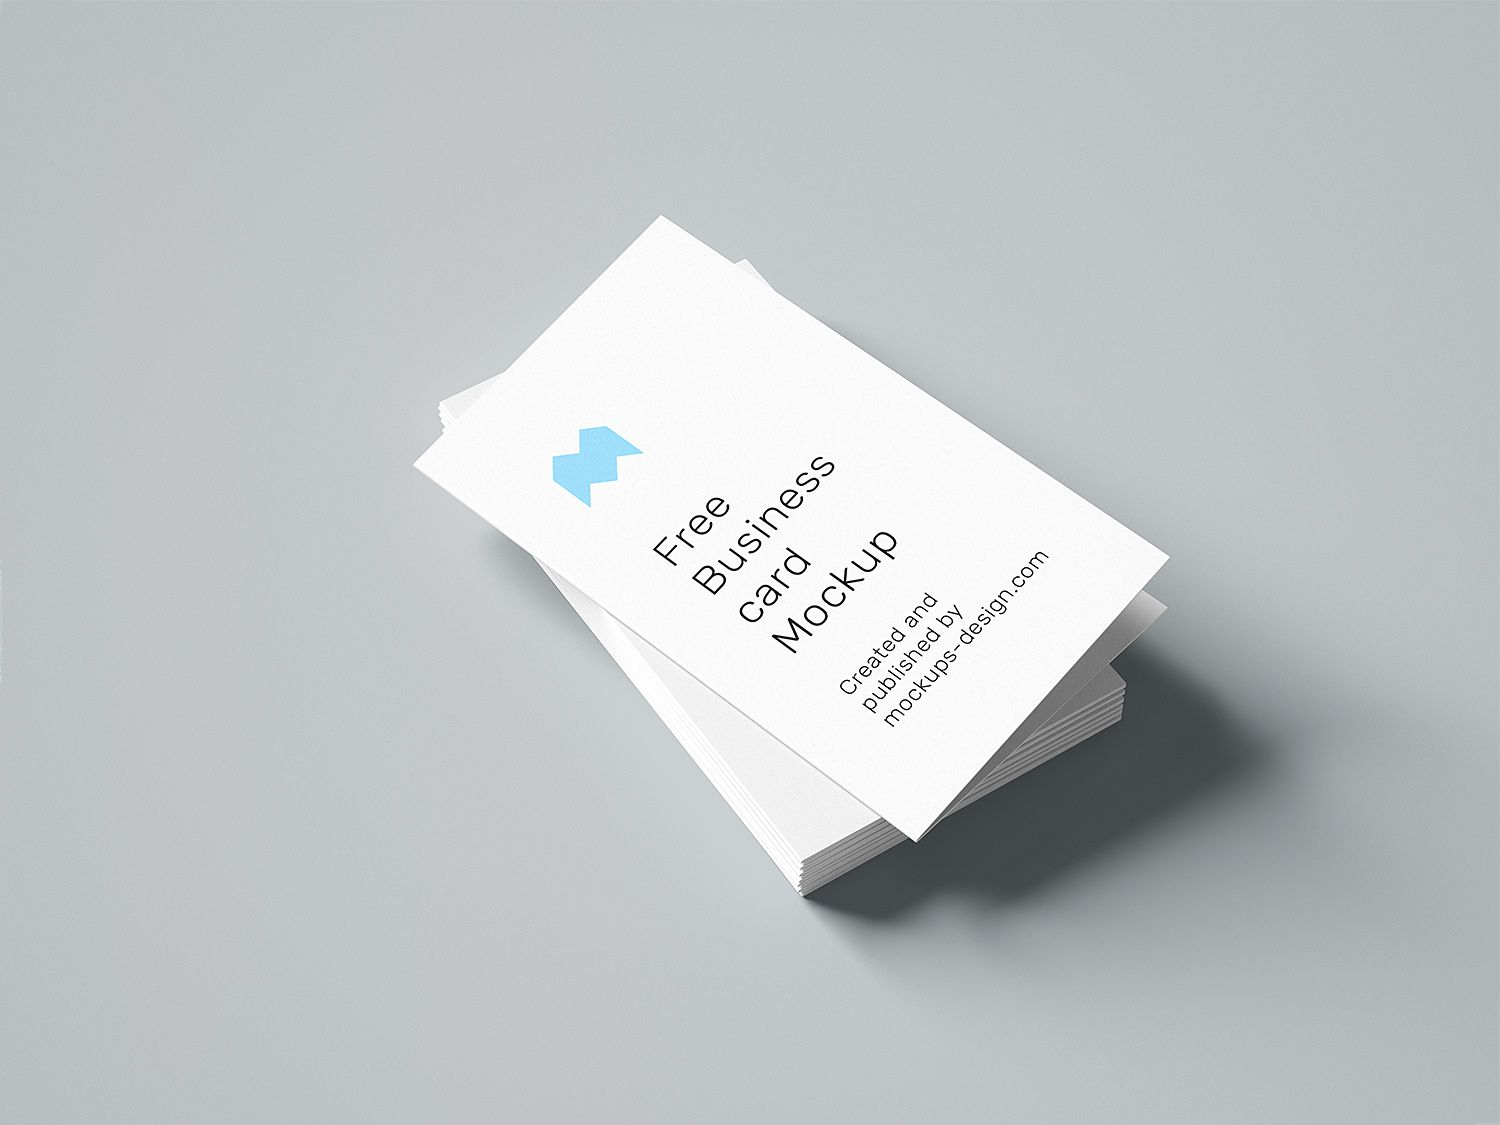 Free Folded Business Cards Mockup 85x55mm Free Business